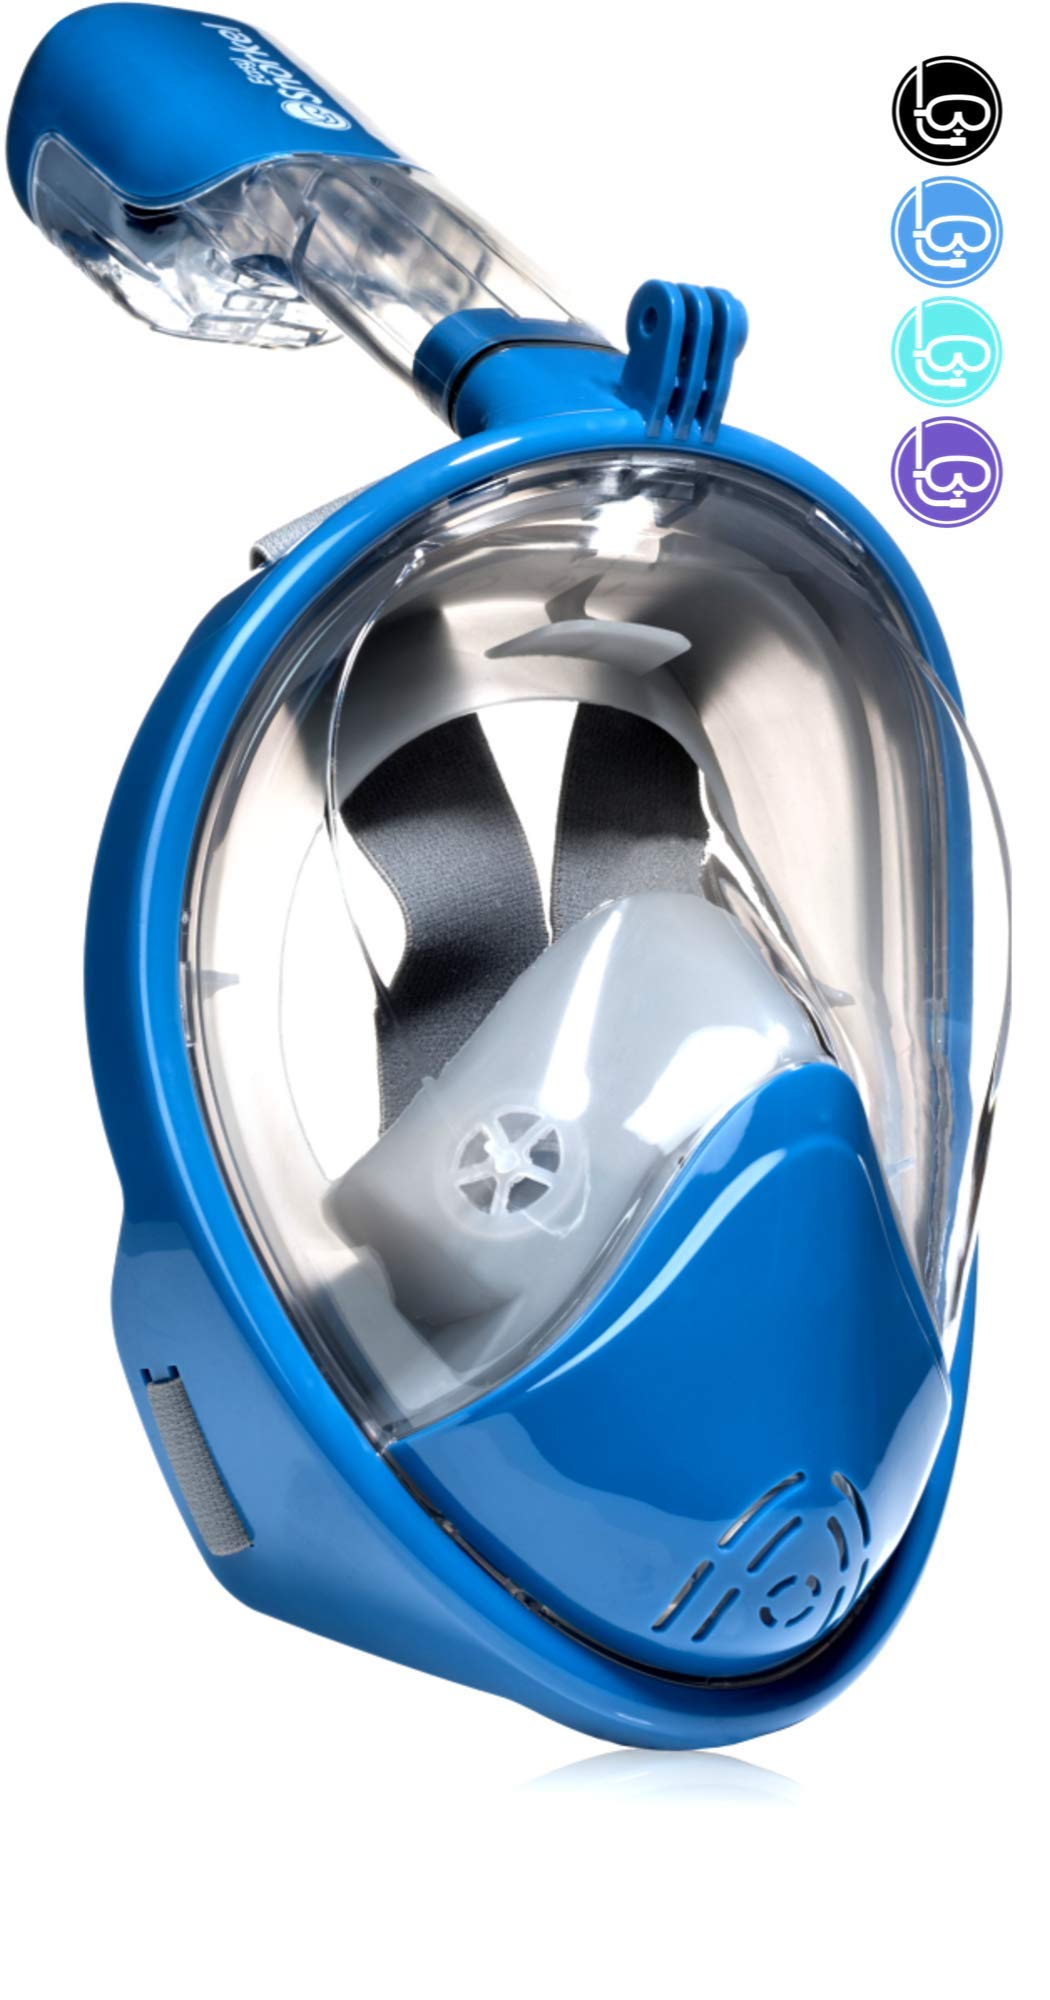 PRODIGY Full Face Snorkel Mask Kids Adult - 180 Snorkeling Gear for Adults - SWIMTECH Hydro Dry Water Lungs Diving Mask Set - with GoPro Mount (Blue/Grey - Small/Medium) by Easy Snorkel